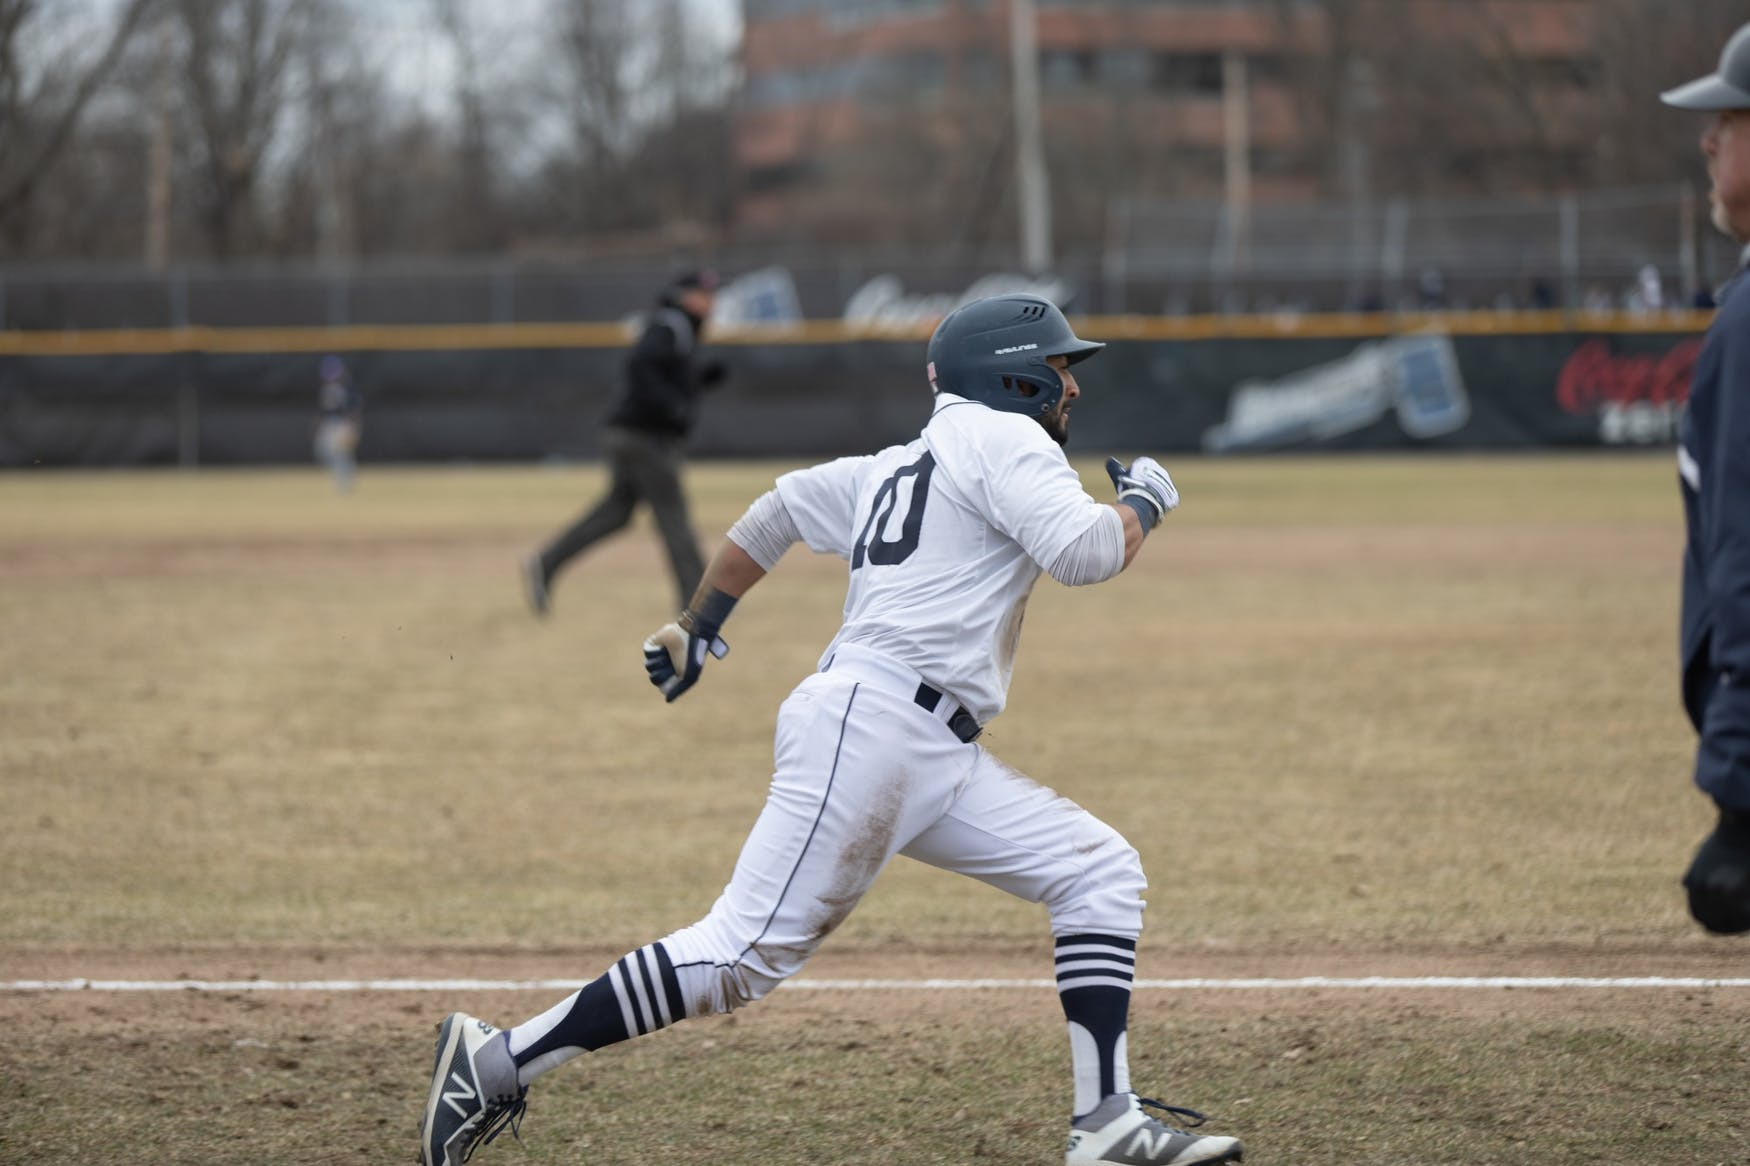 baseball-m-vs-suffolk-ys1-3-21-19-0070